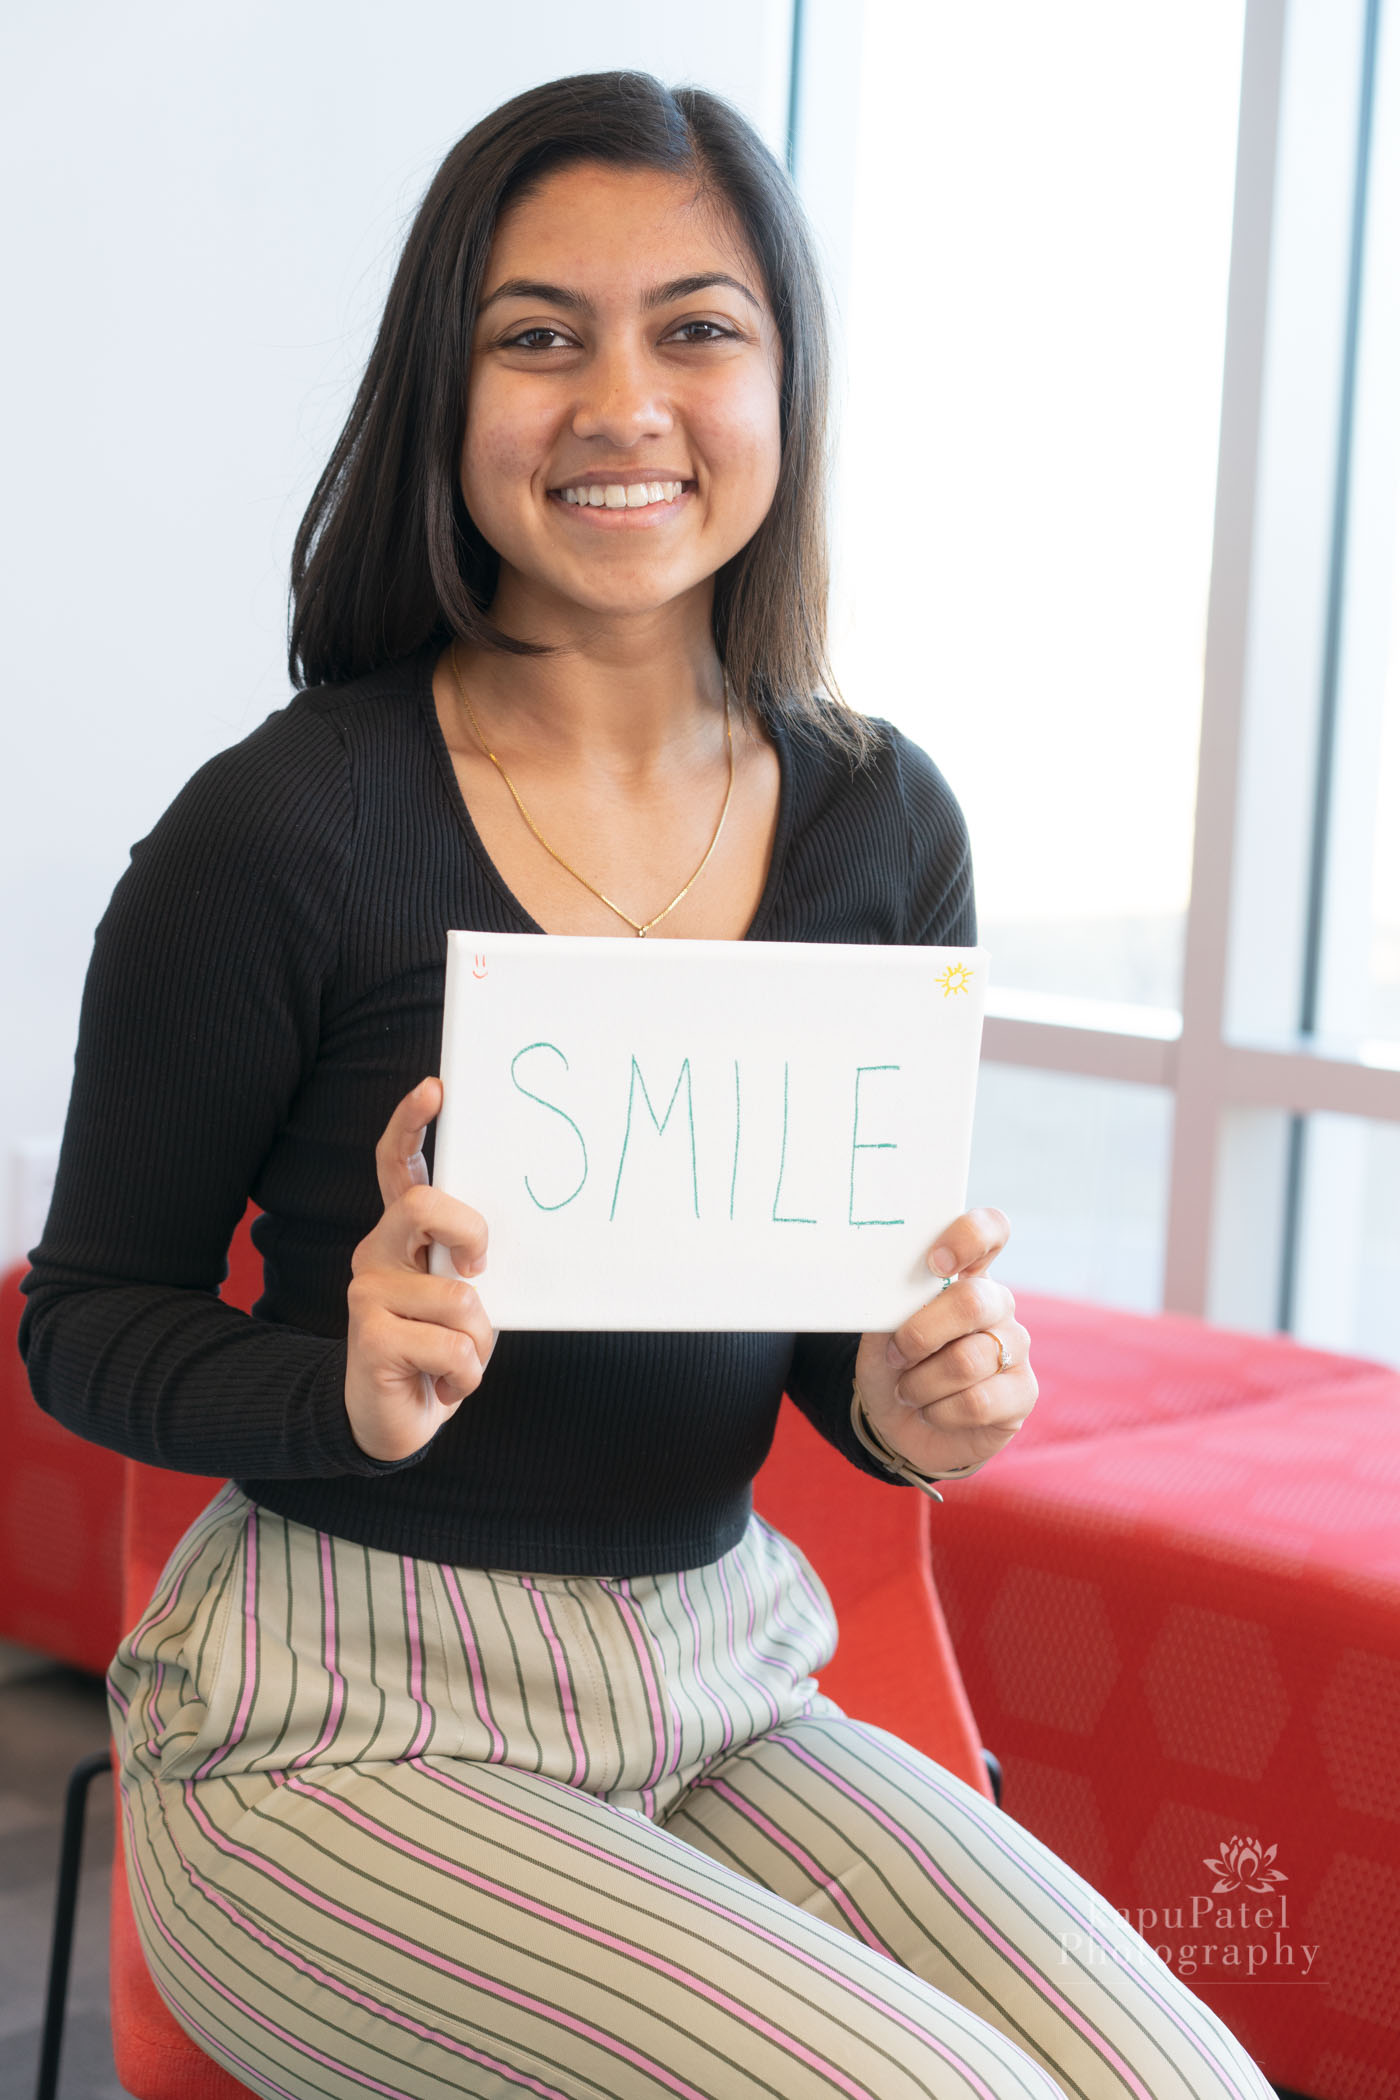 AYUSHI - I am not afraid to smile or laugh. I love smiling, and I love laughing more. My smile almost gives me some type of superpower ability to overcome any hardship.